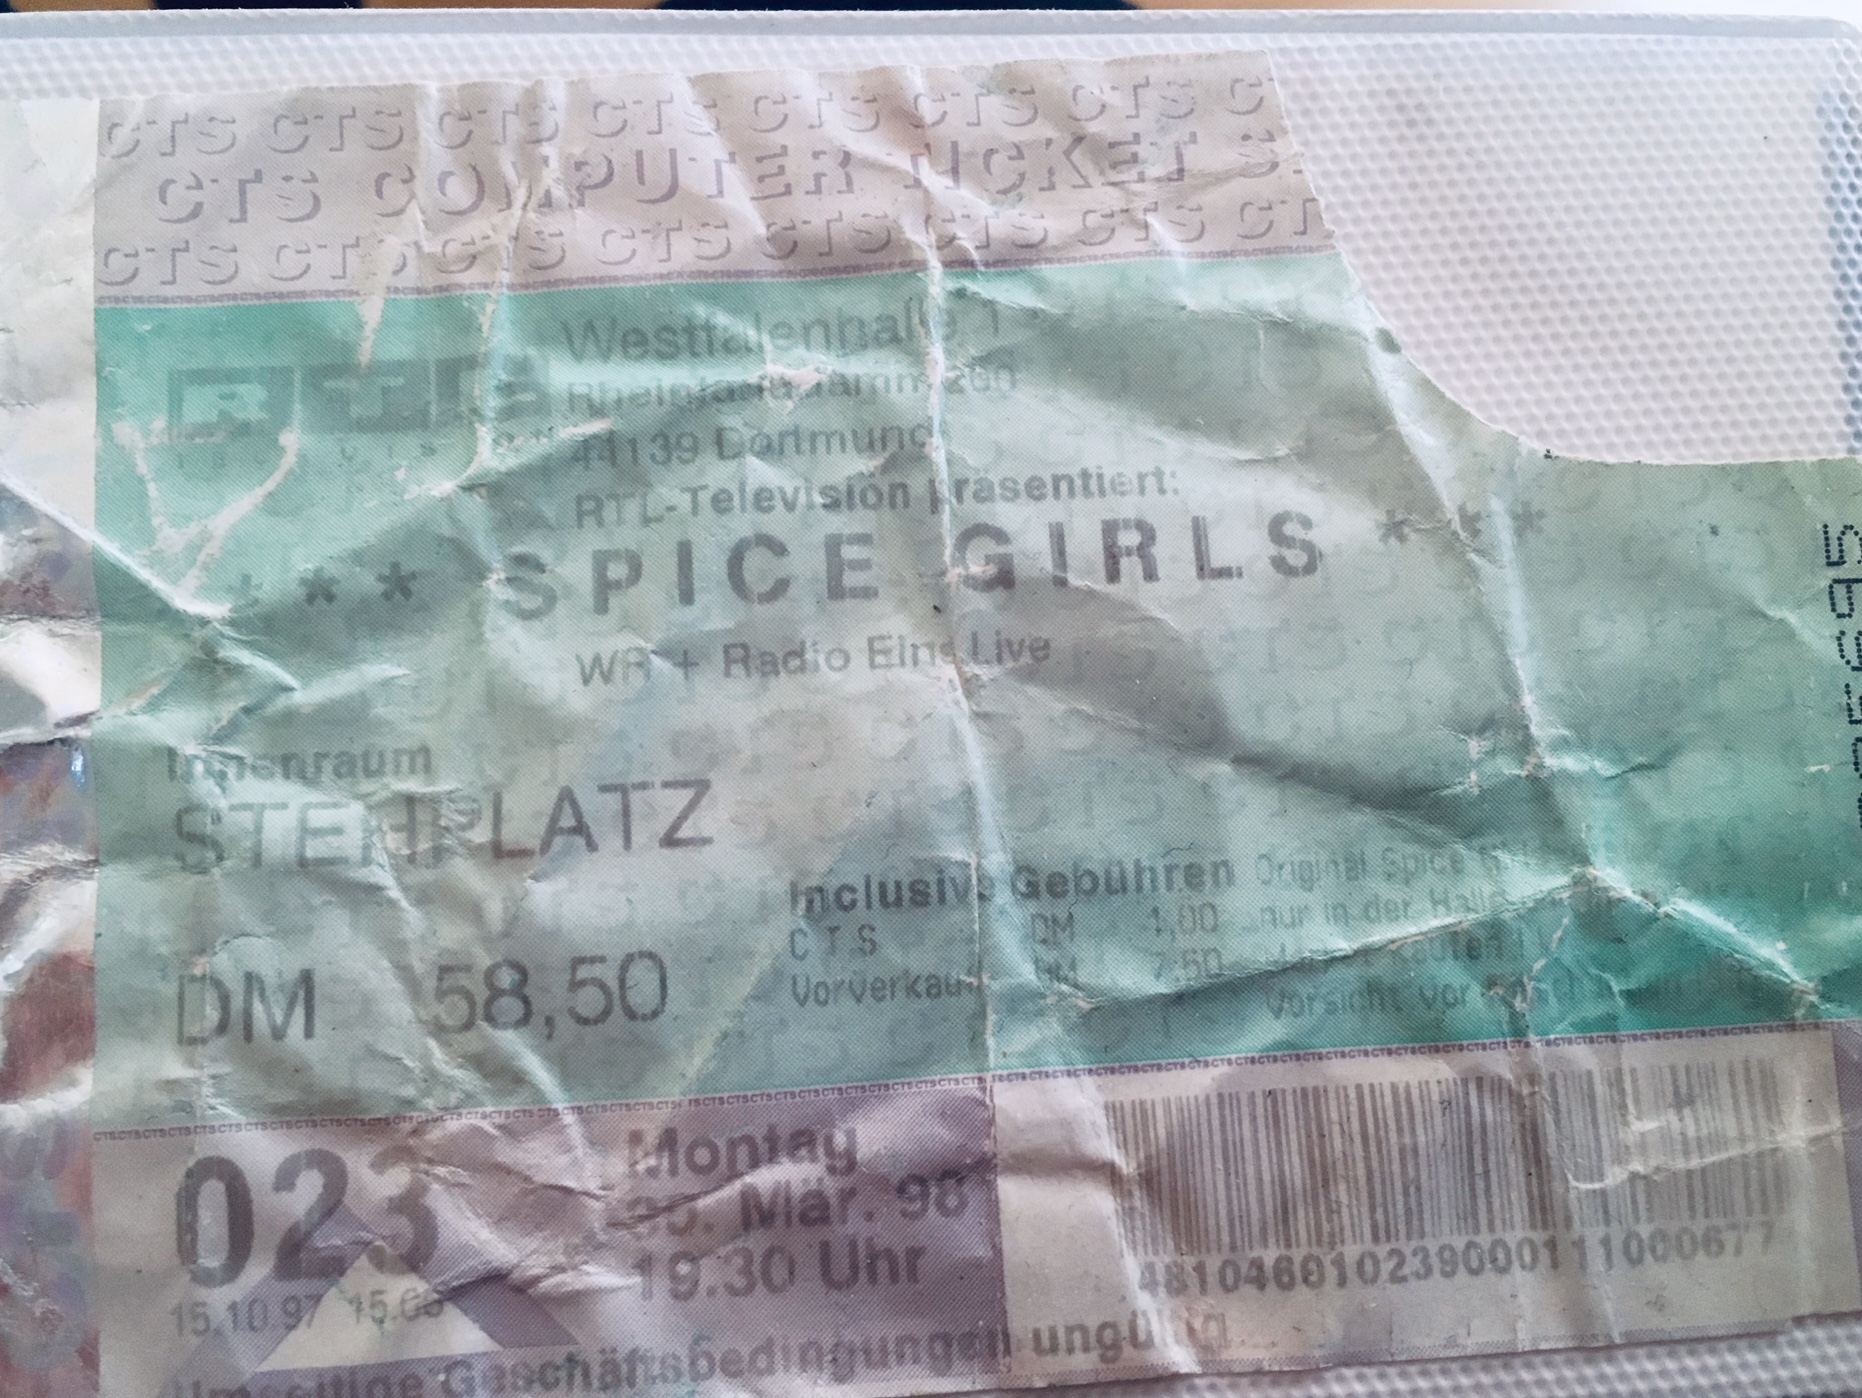 Original Konzertkarte vom Spice Girls Konzert 1998 in Dortmund. Fotocredit: Pop Ate My heart